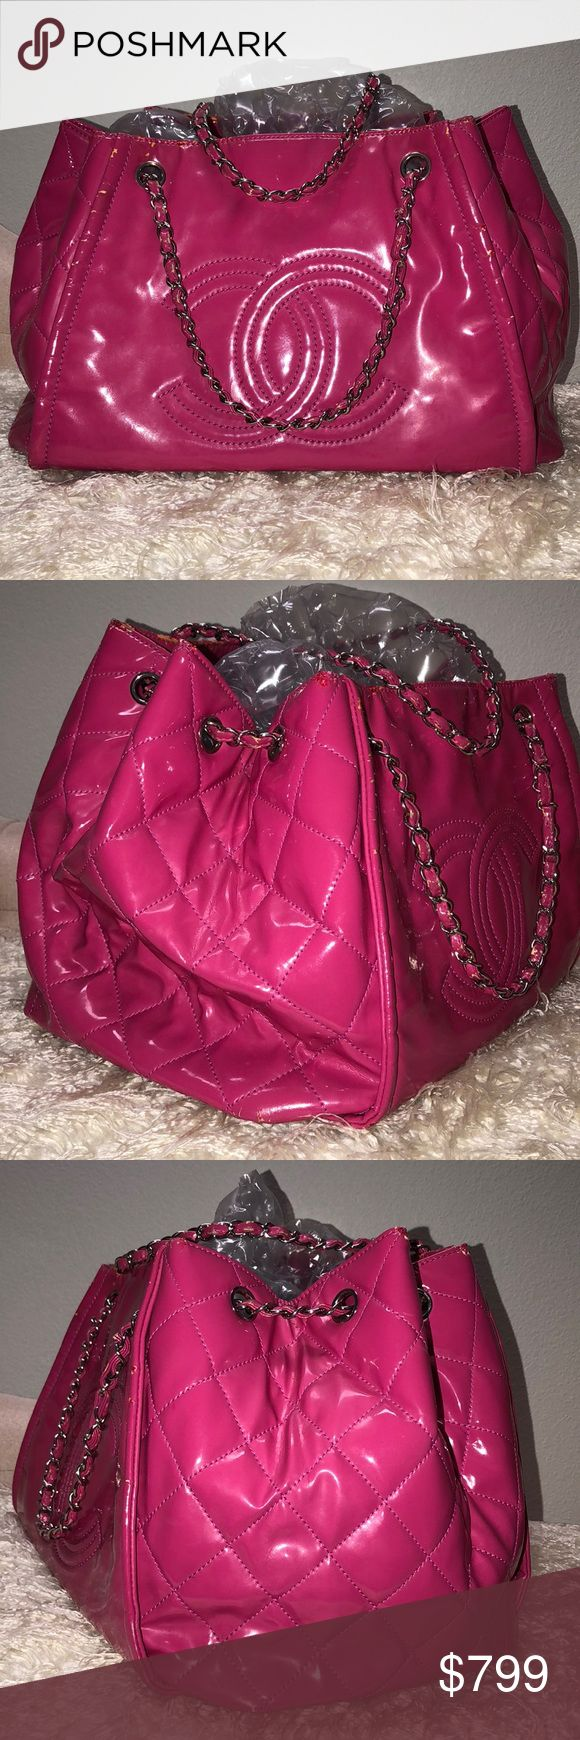 CHANEL PINK SHOULDER BAG CROSSBODY 100% AUTHENTIC. IT IS VINTAGE AND USED, SO PLEASE EXPECT WEAR AND TEAR. I SAW ONE LIKE THIS ON EBAY FOR $999. IT IS ROOMY AND GORGEOUS. THE OPEN BUTTON DOESN'T CLOSE, SINCE ONE PART OF THE CLOUSURE IS MISSING. PLEASE PAY OVER $500 AND POSHMARK WILL VERIFY THE AUTHENTICITY FOR FREE. NO TRADES! CHANEL Bags Shoulder Bags